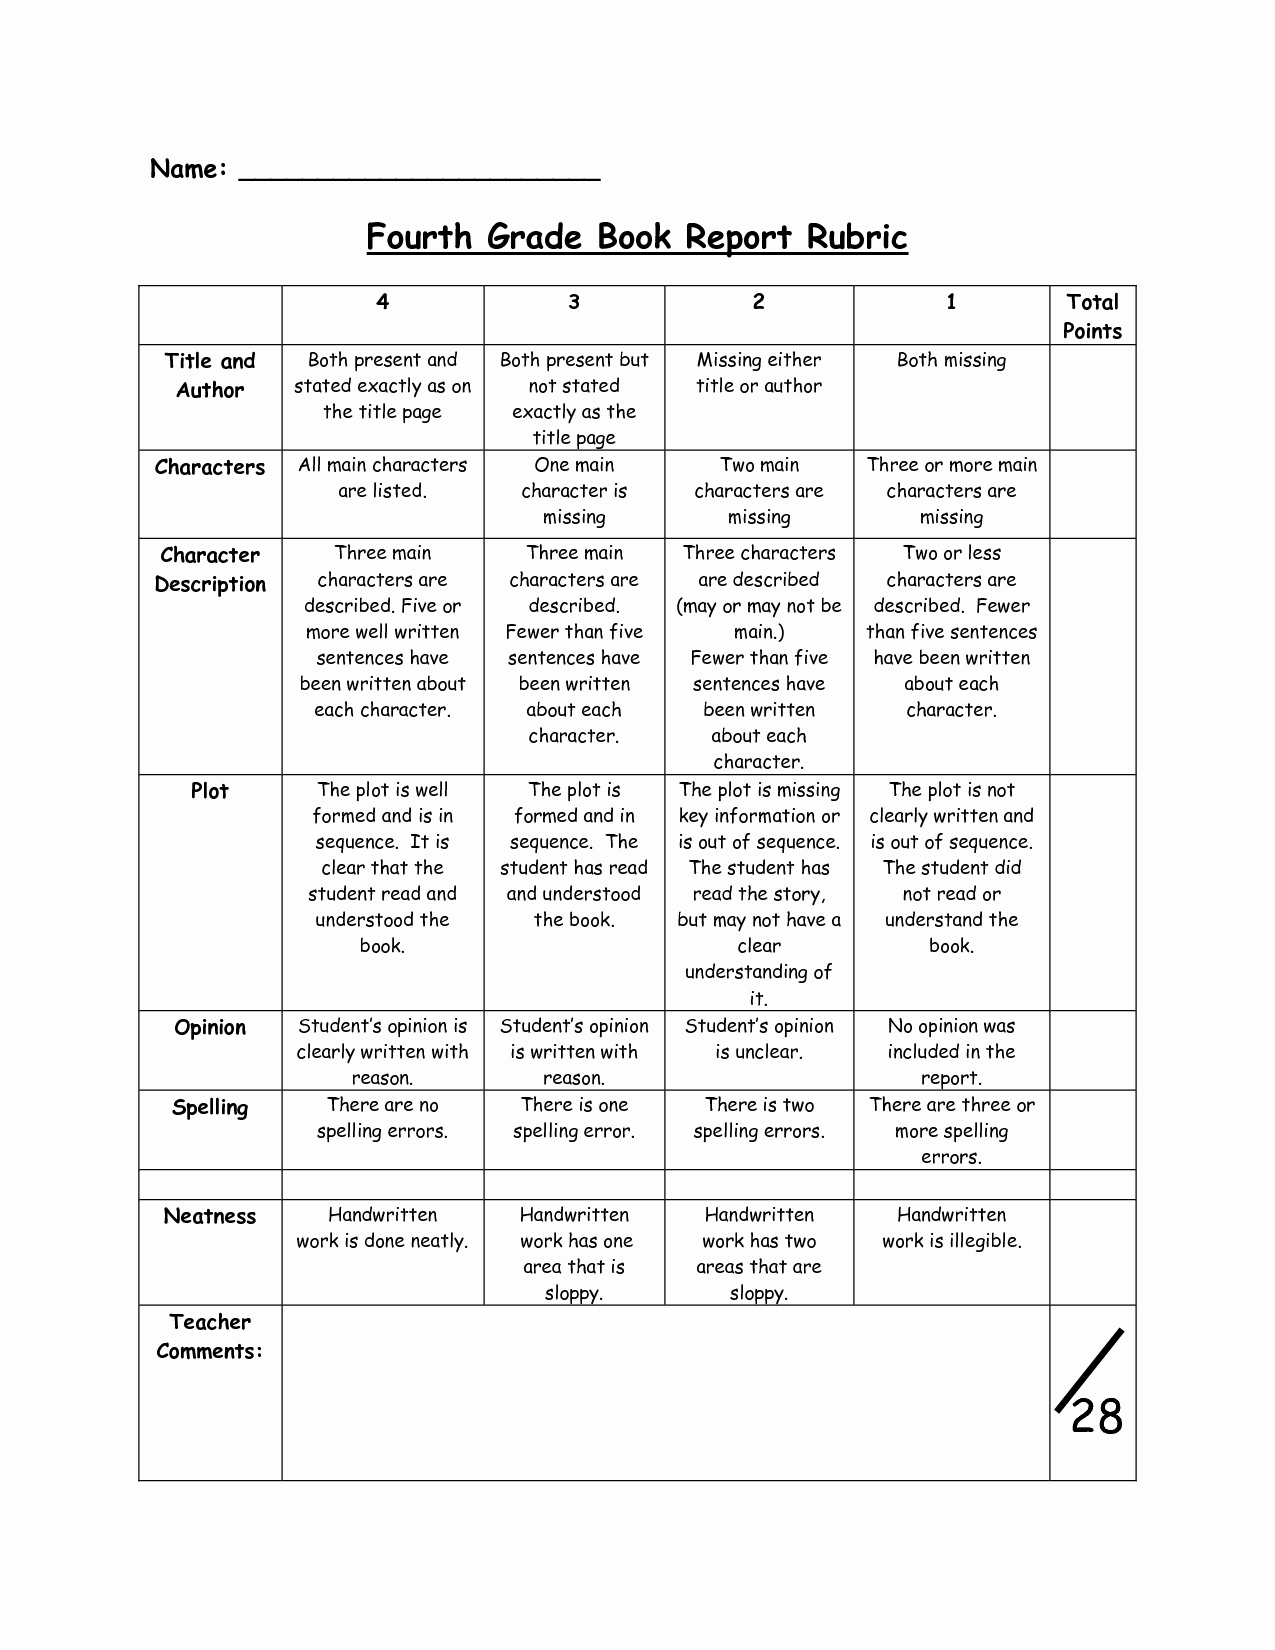 6th Grade Book Report Template Lovely Fourth Grade Book Report Rubric Pdf Pdf … Literature Projects